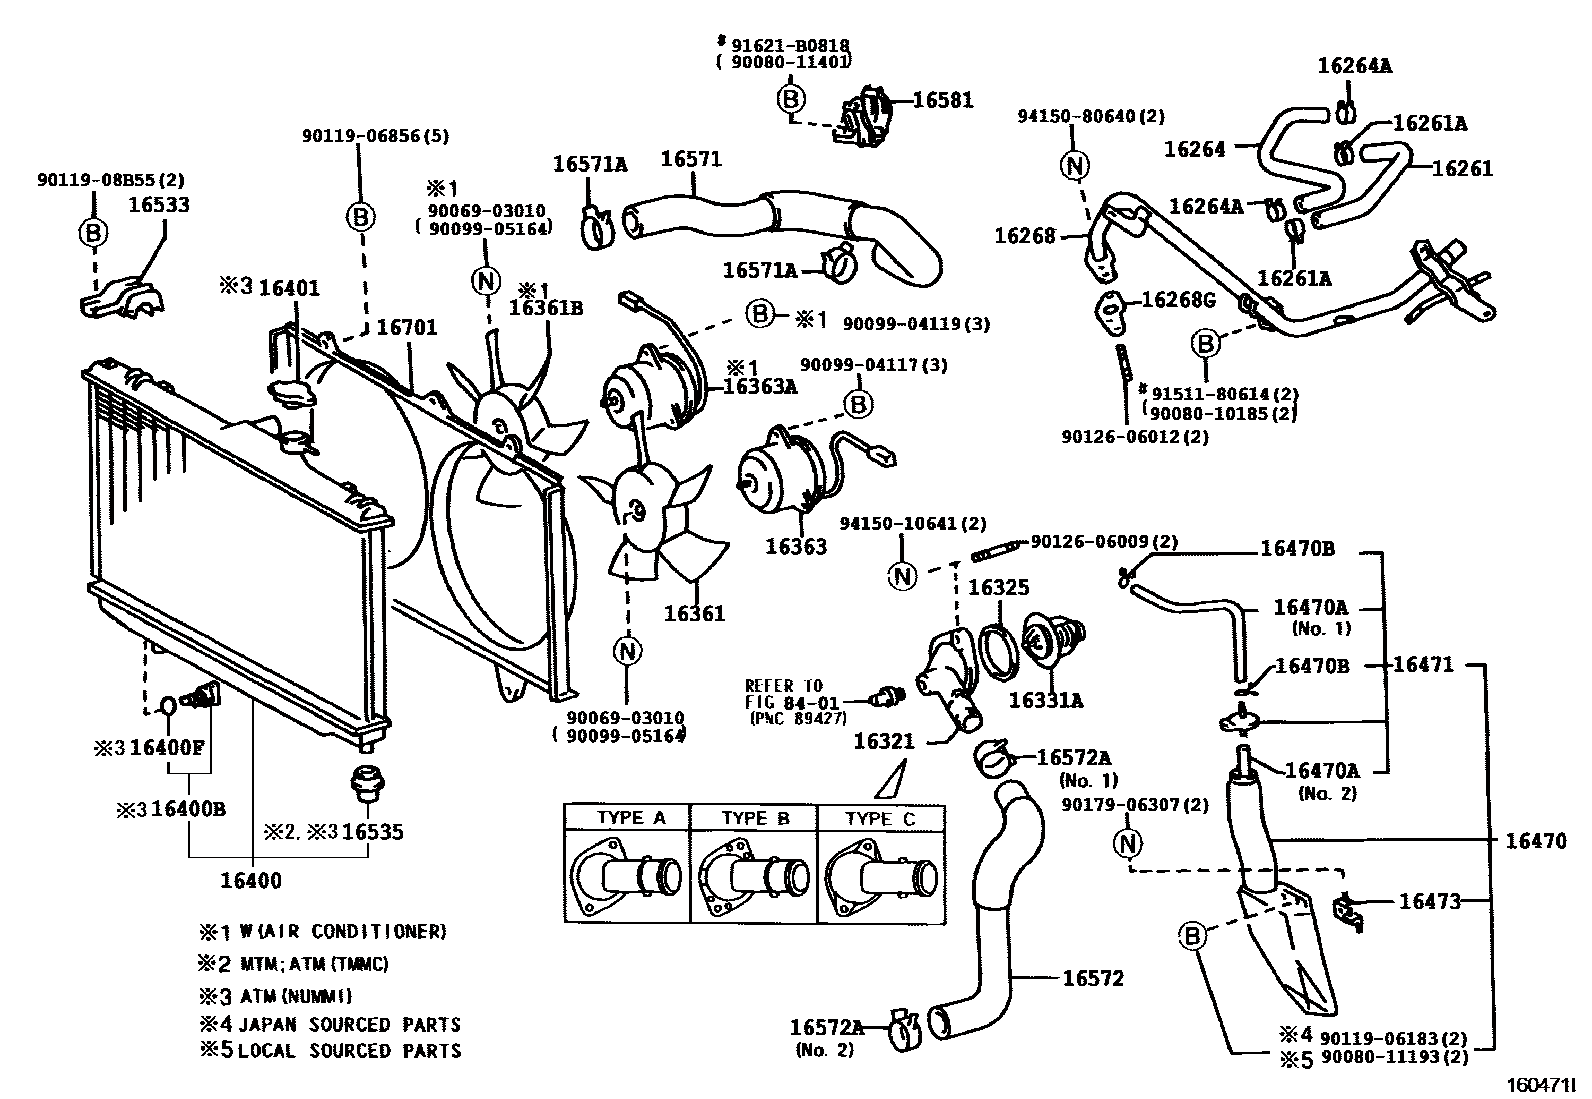 Wiring Diagram 2001 S10 Zr2 2001 S10 Headlight Wiring